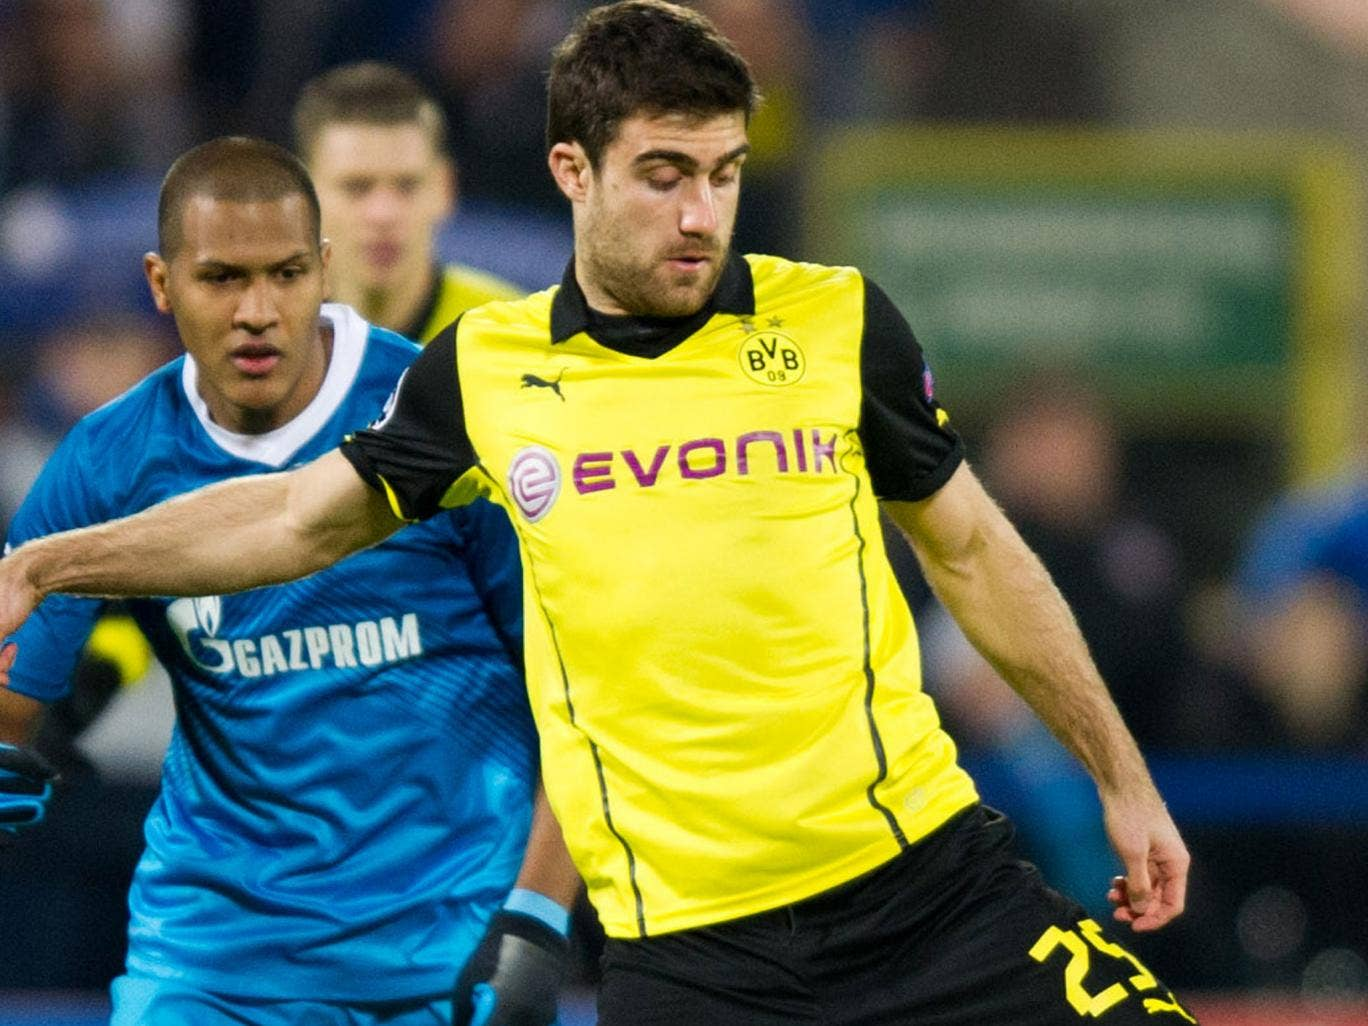 Sokratis Papastathopoulos (right) in action for Borussia Dortmund